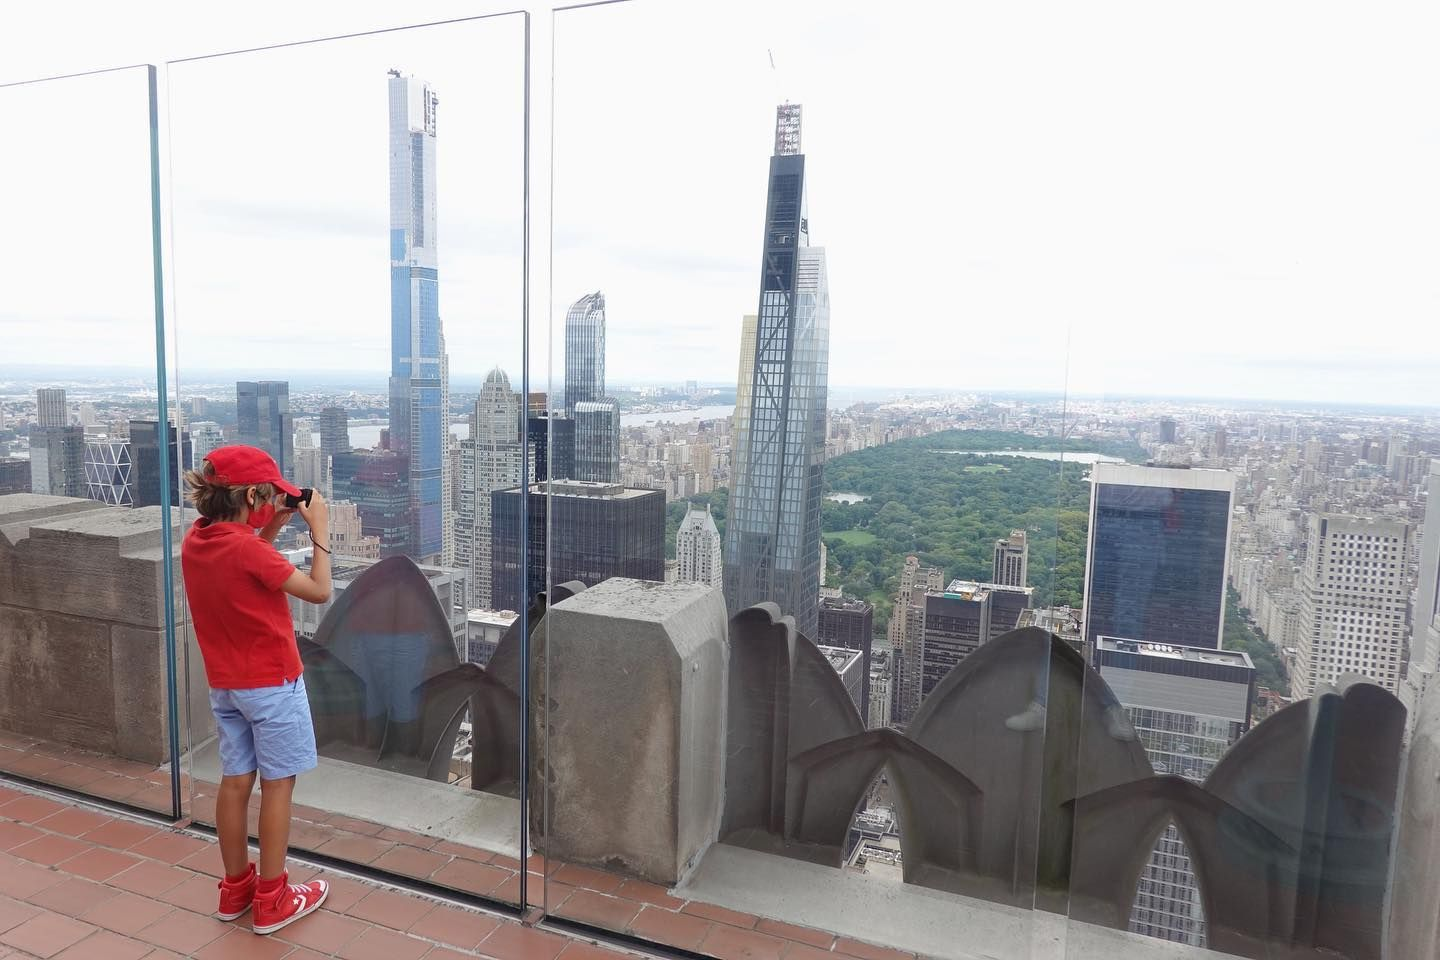 Arthur à New York. Arthur in NYC. #arthur #topoftherock #nyc #newyorkcity #rockefellercenter #manhattan #usa #redhat #kid #red #globetrotter #globetrotteur #aroundtheworld #autourdumonde #trottinette #coronavirus #manhattan #micromobility #travel #discover #decouverte #voyage #discovery #tv #gulli #youngkid #happykid #empirestatebuilding